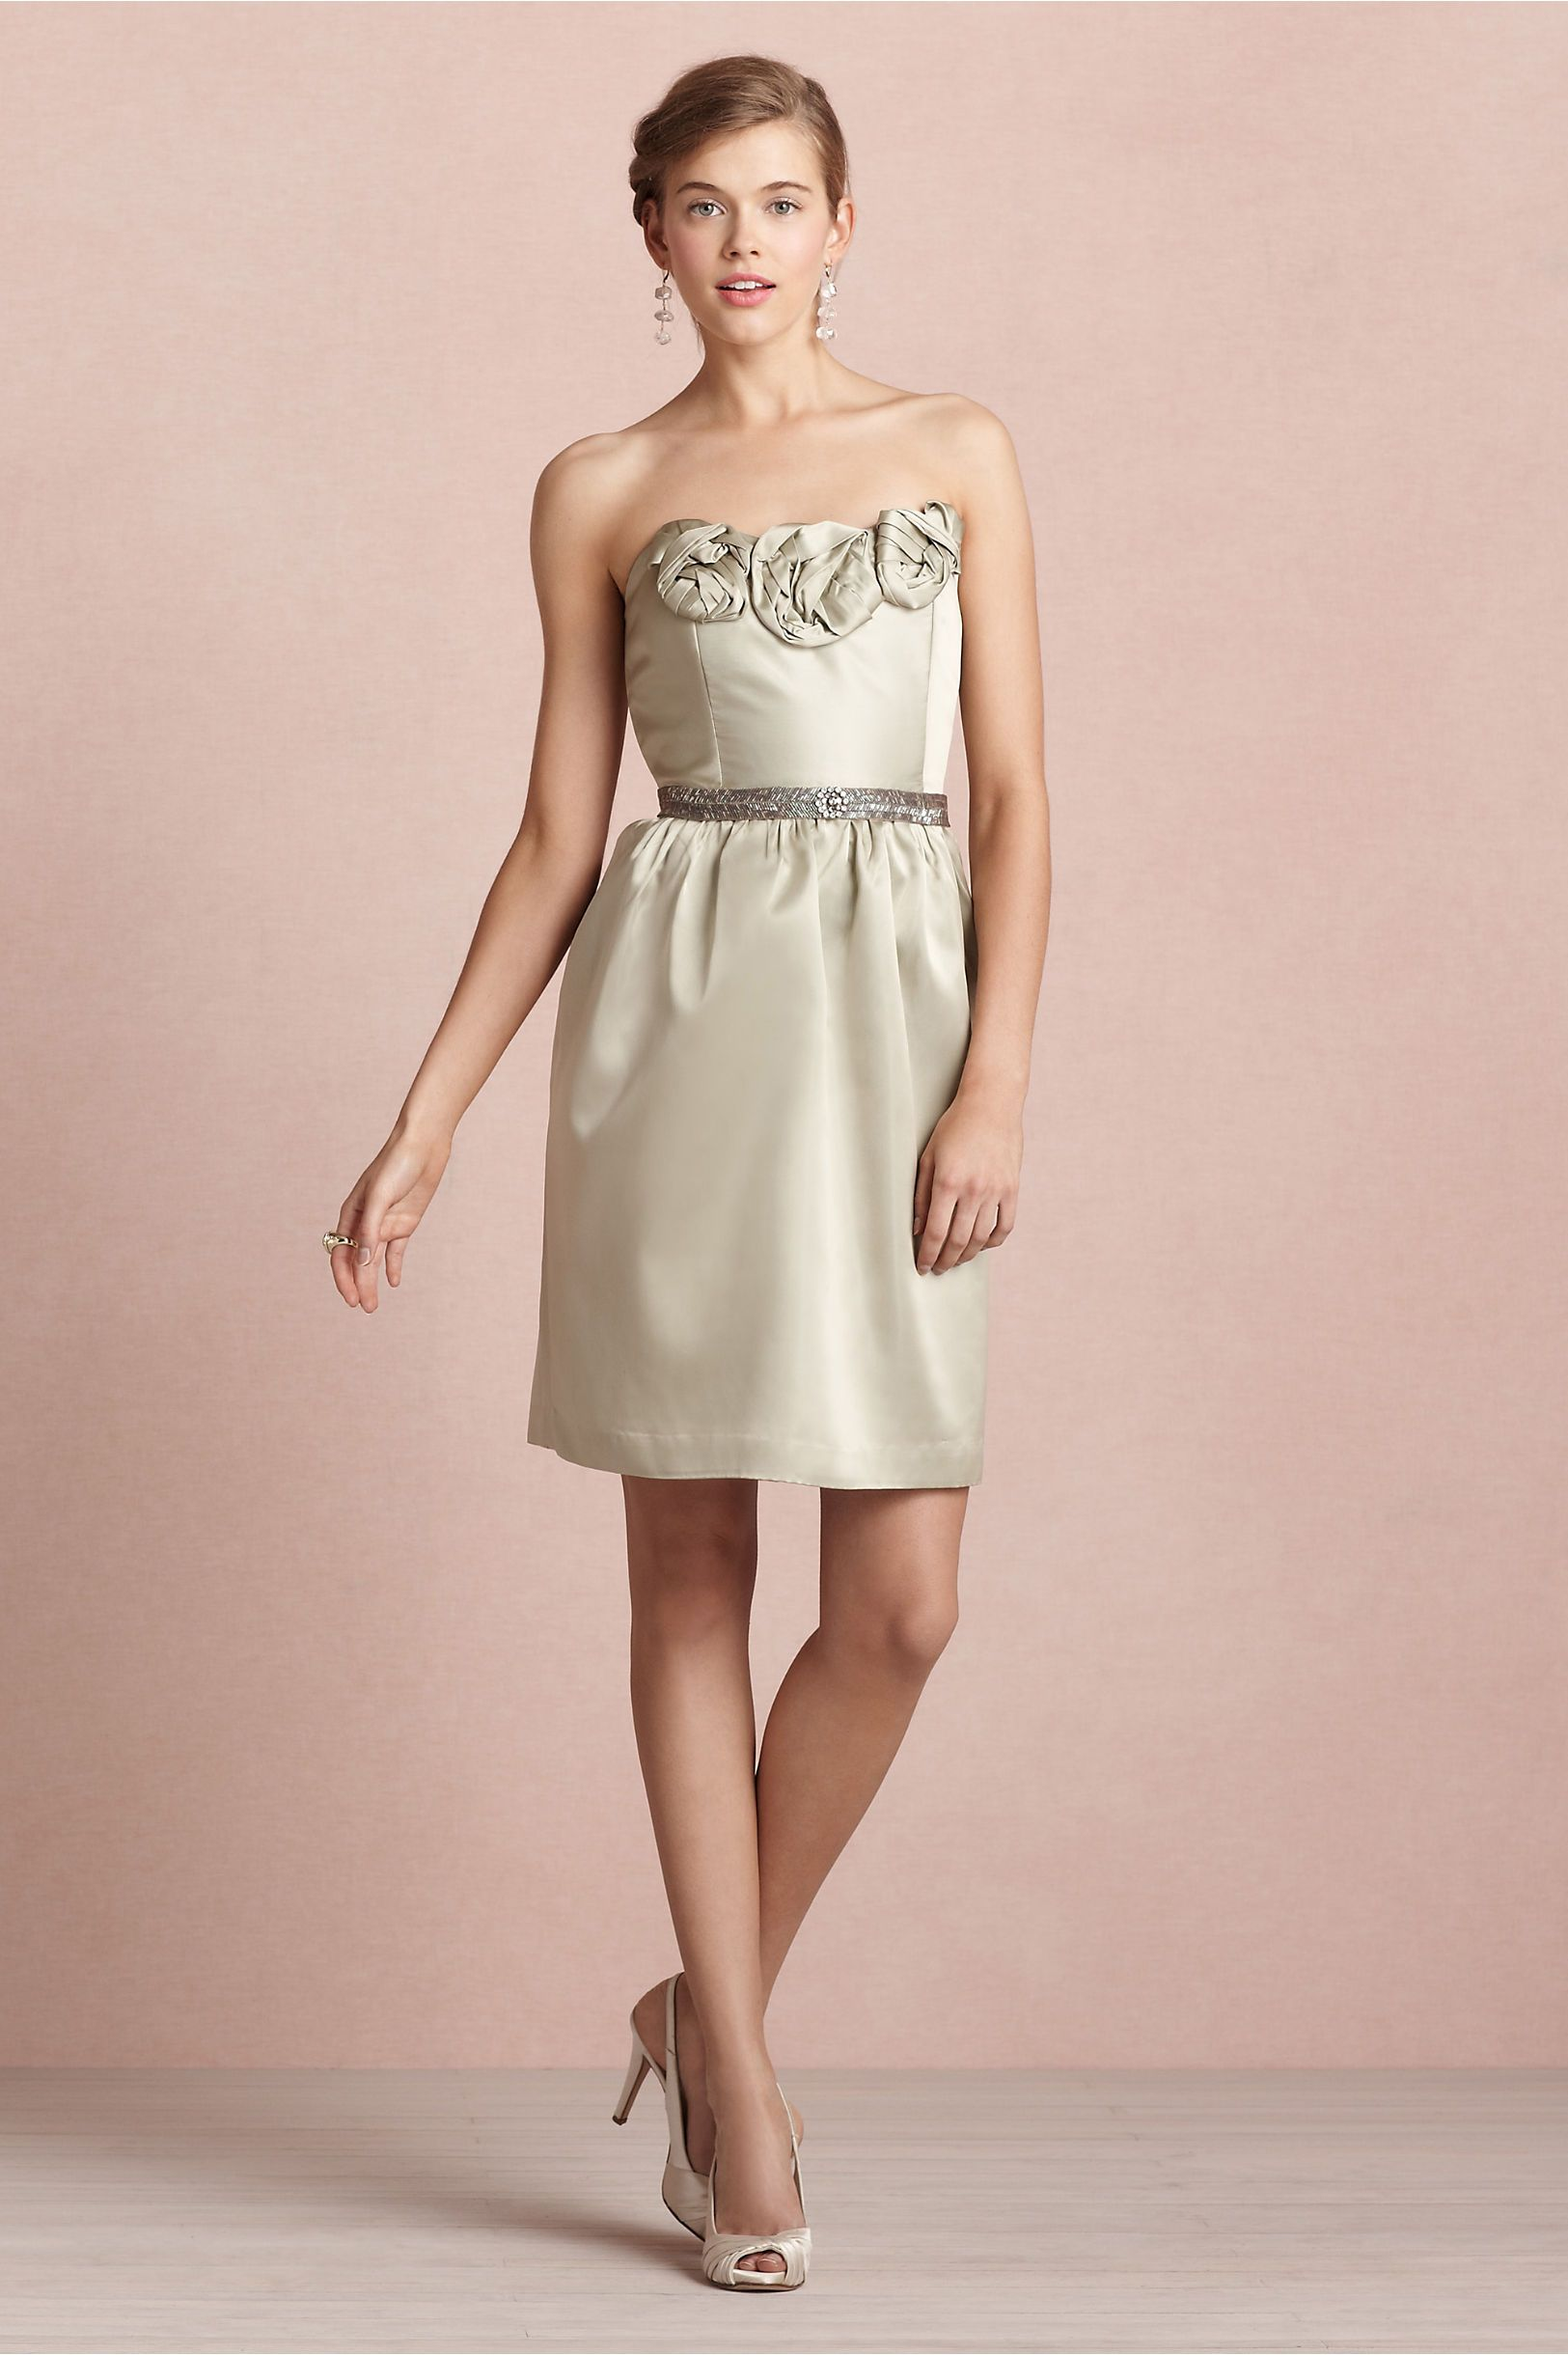 Rosette Dress in SHOP Bridesmaids & Partygoers Dresses at BHLDN ...